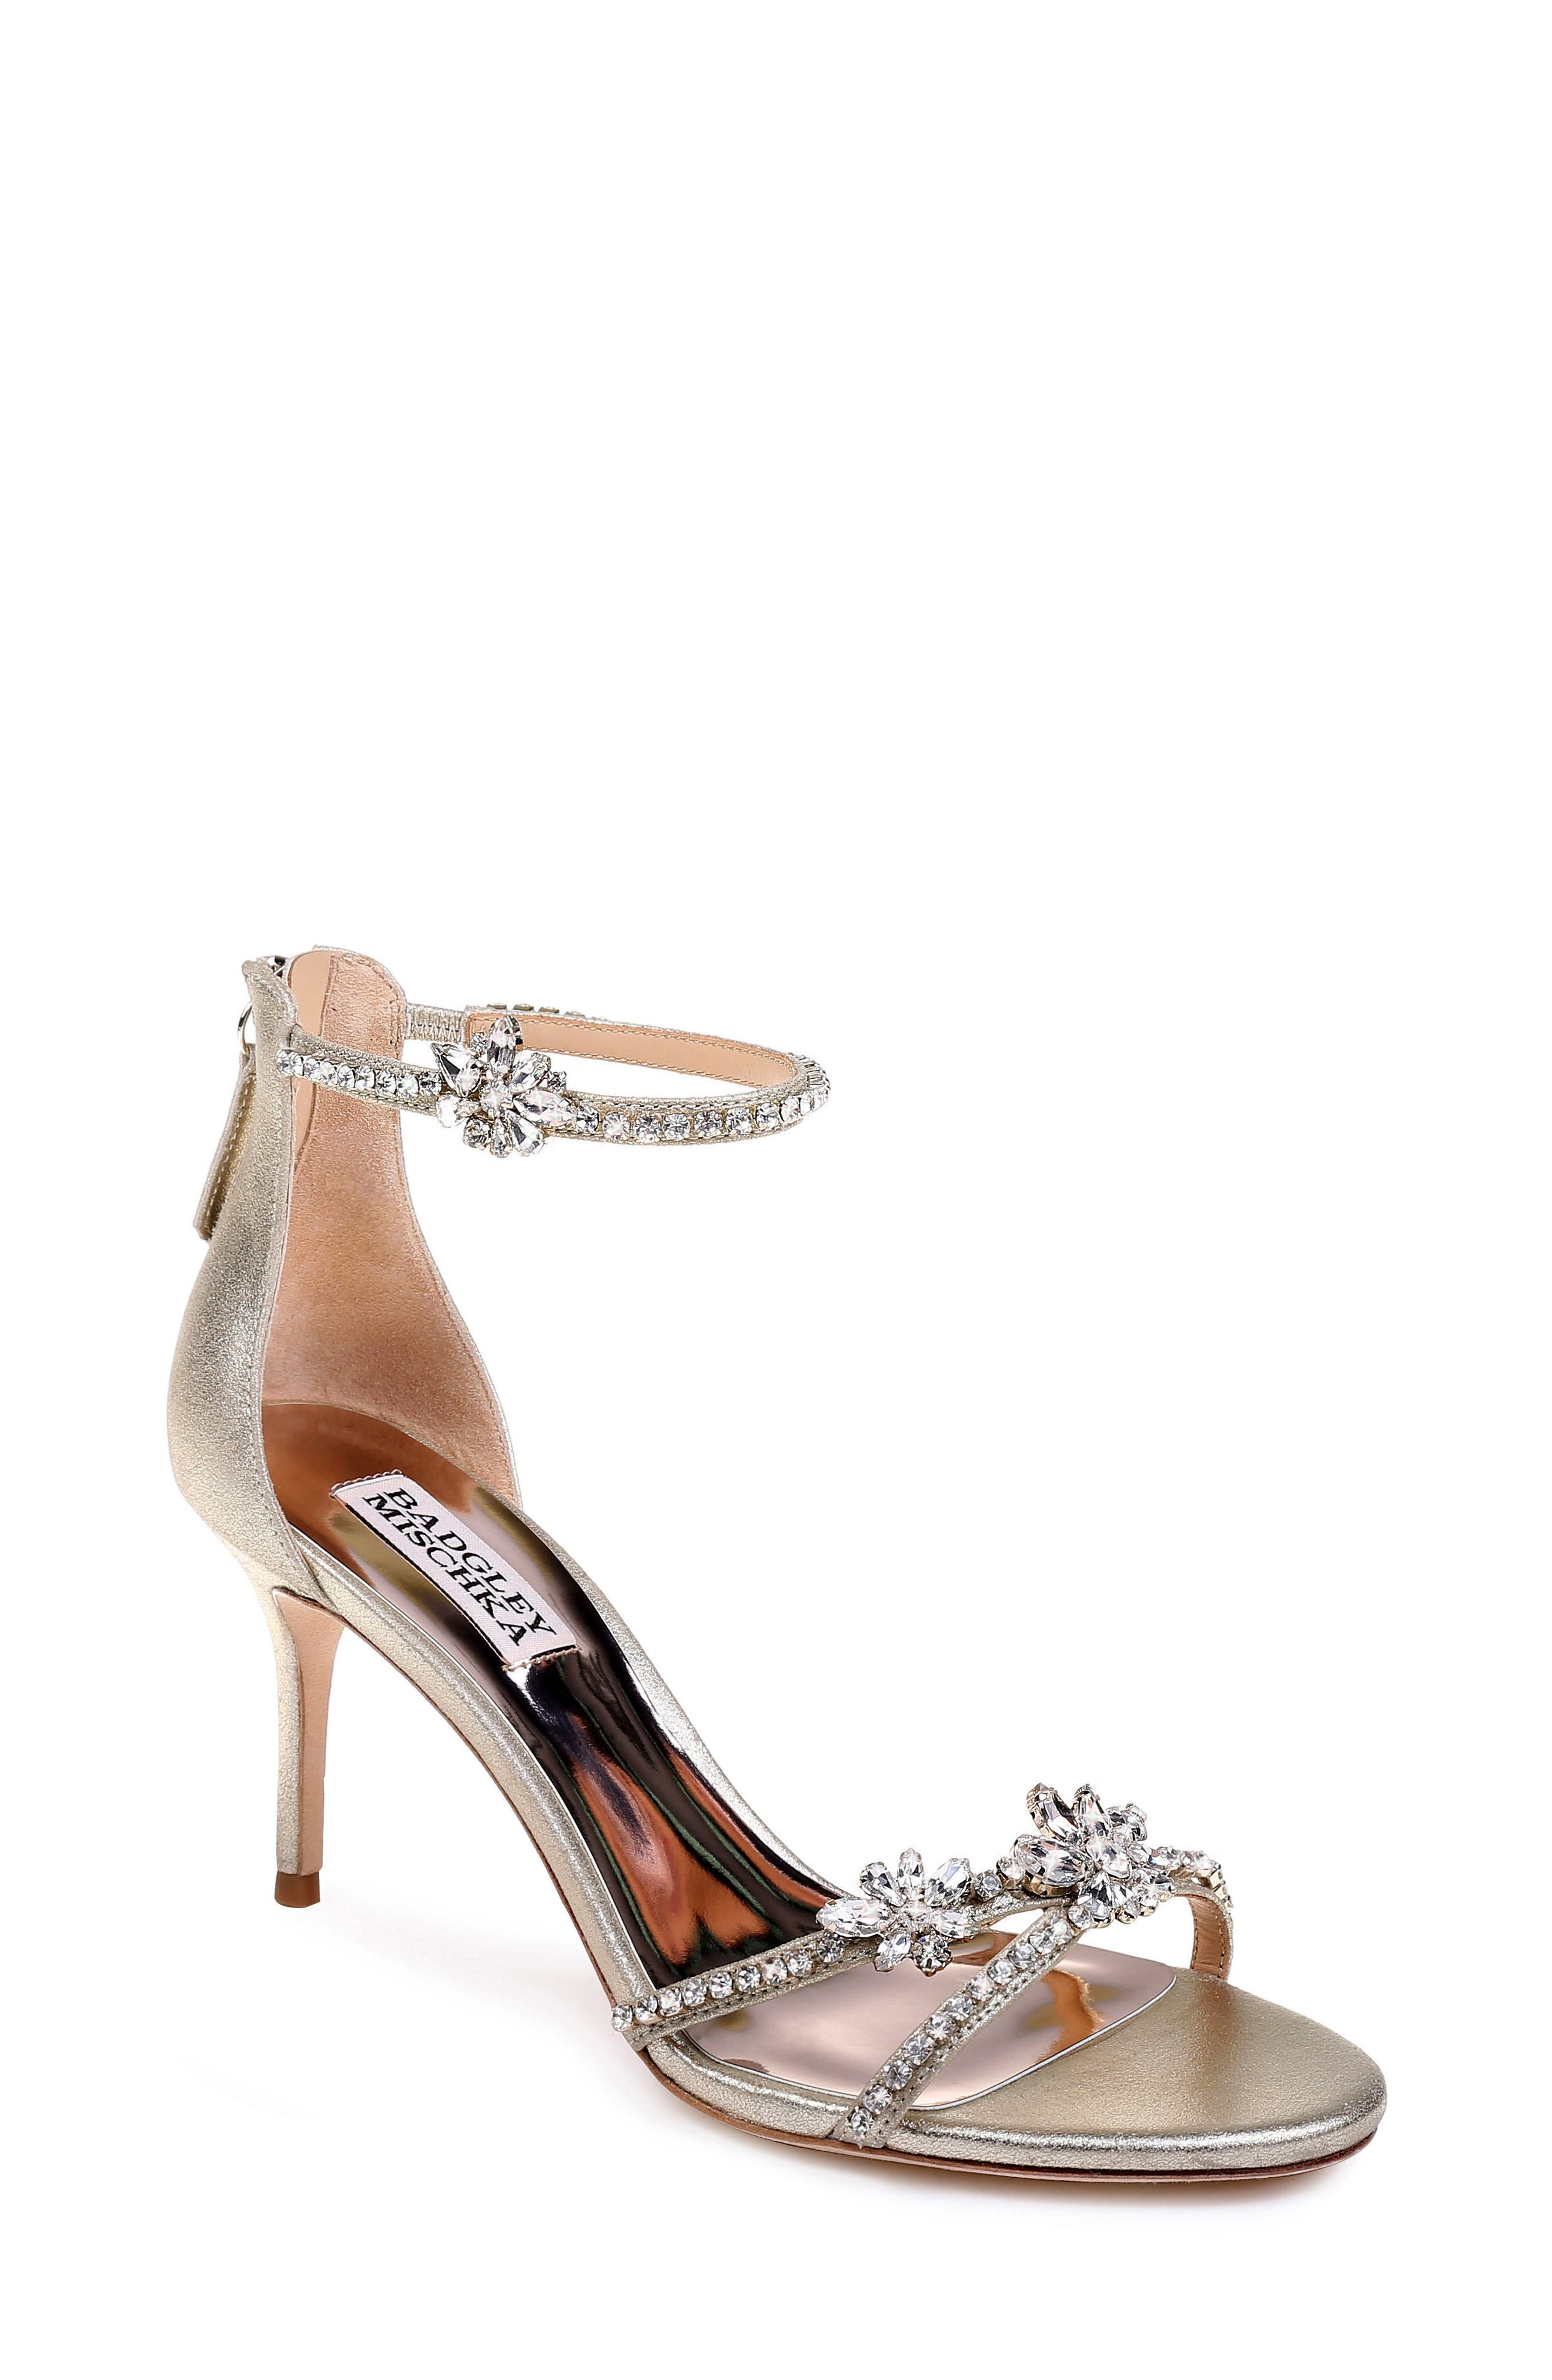 BADGLEY MISCHKA COLLECTION Badgley Mischka Hobbs Ankle Strap Sandal, Main, color, 040